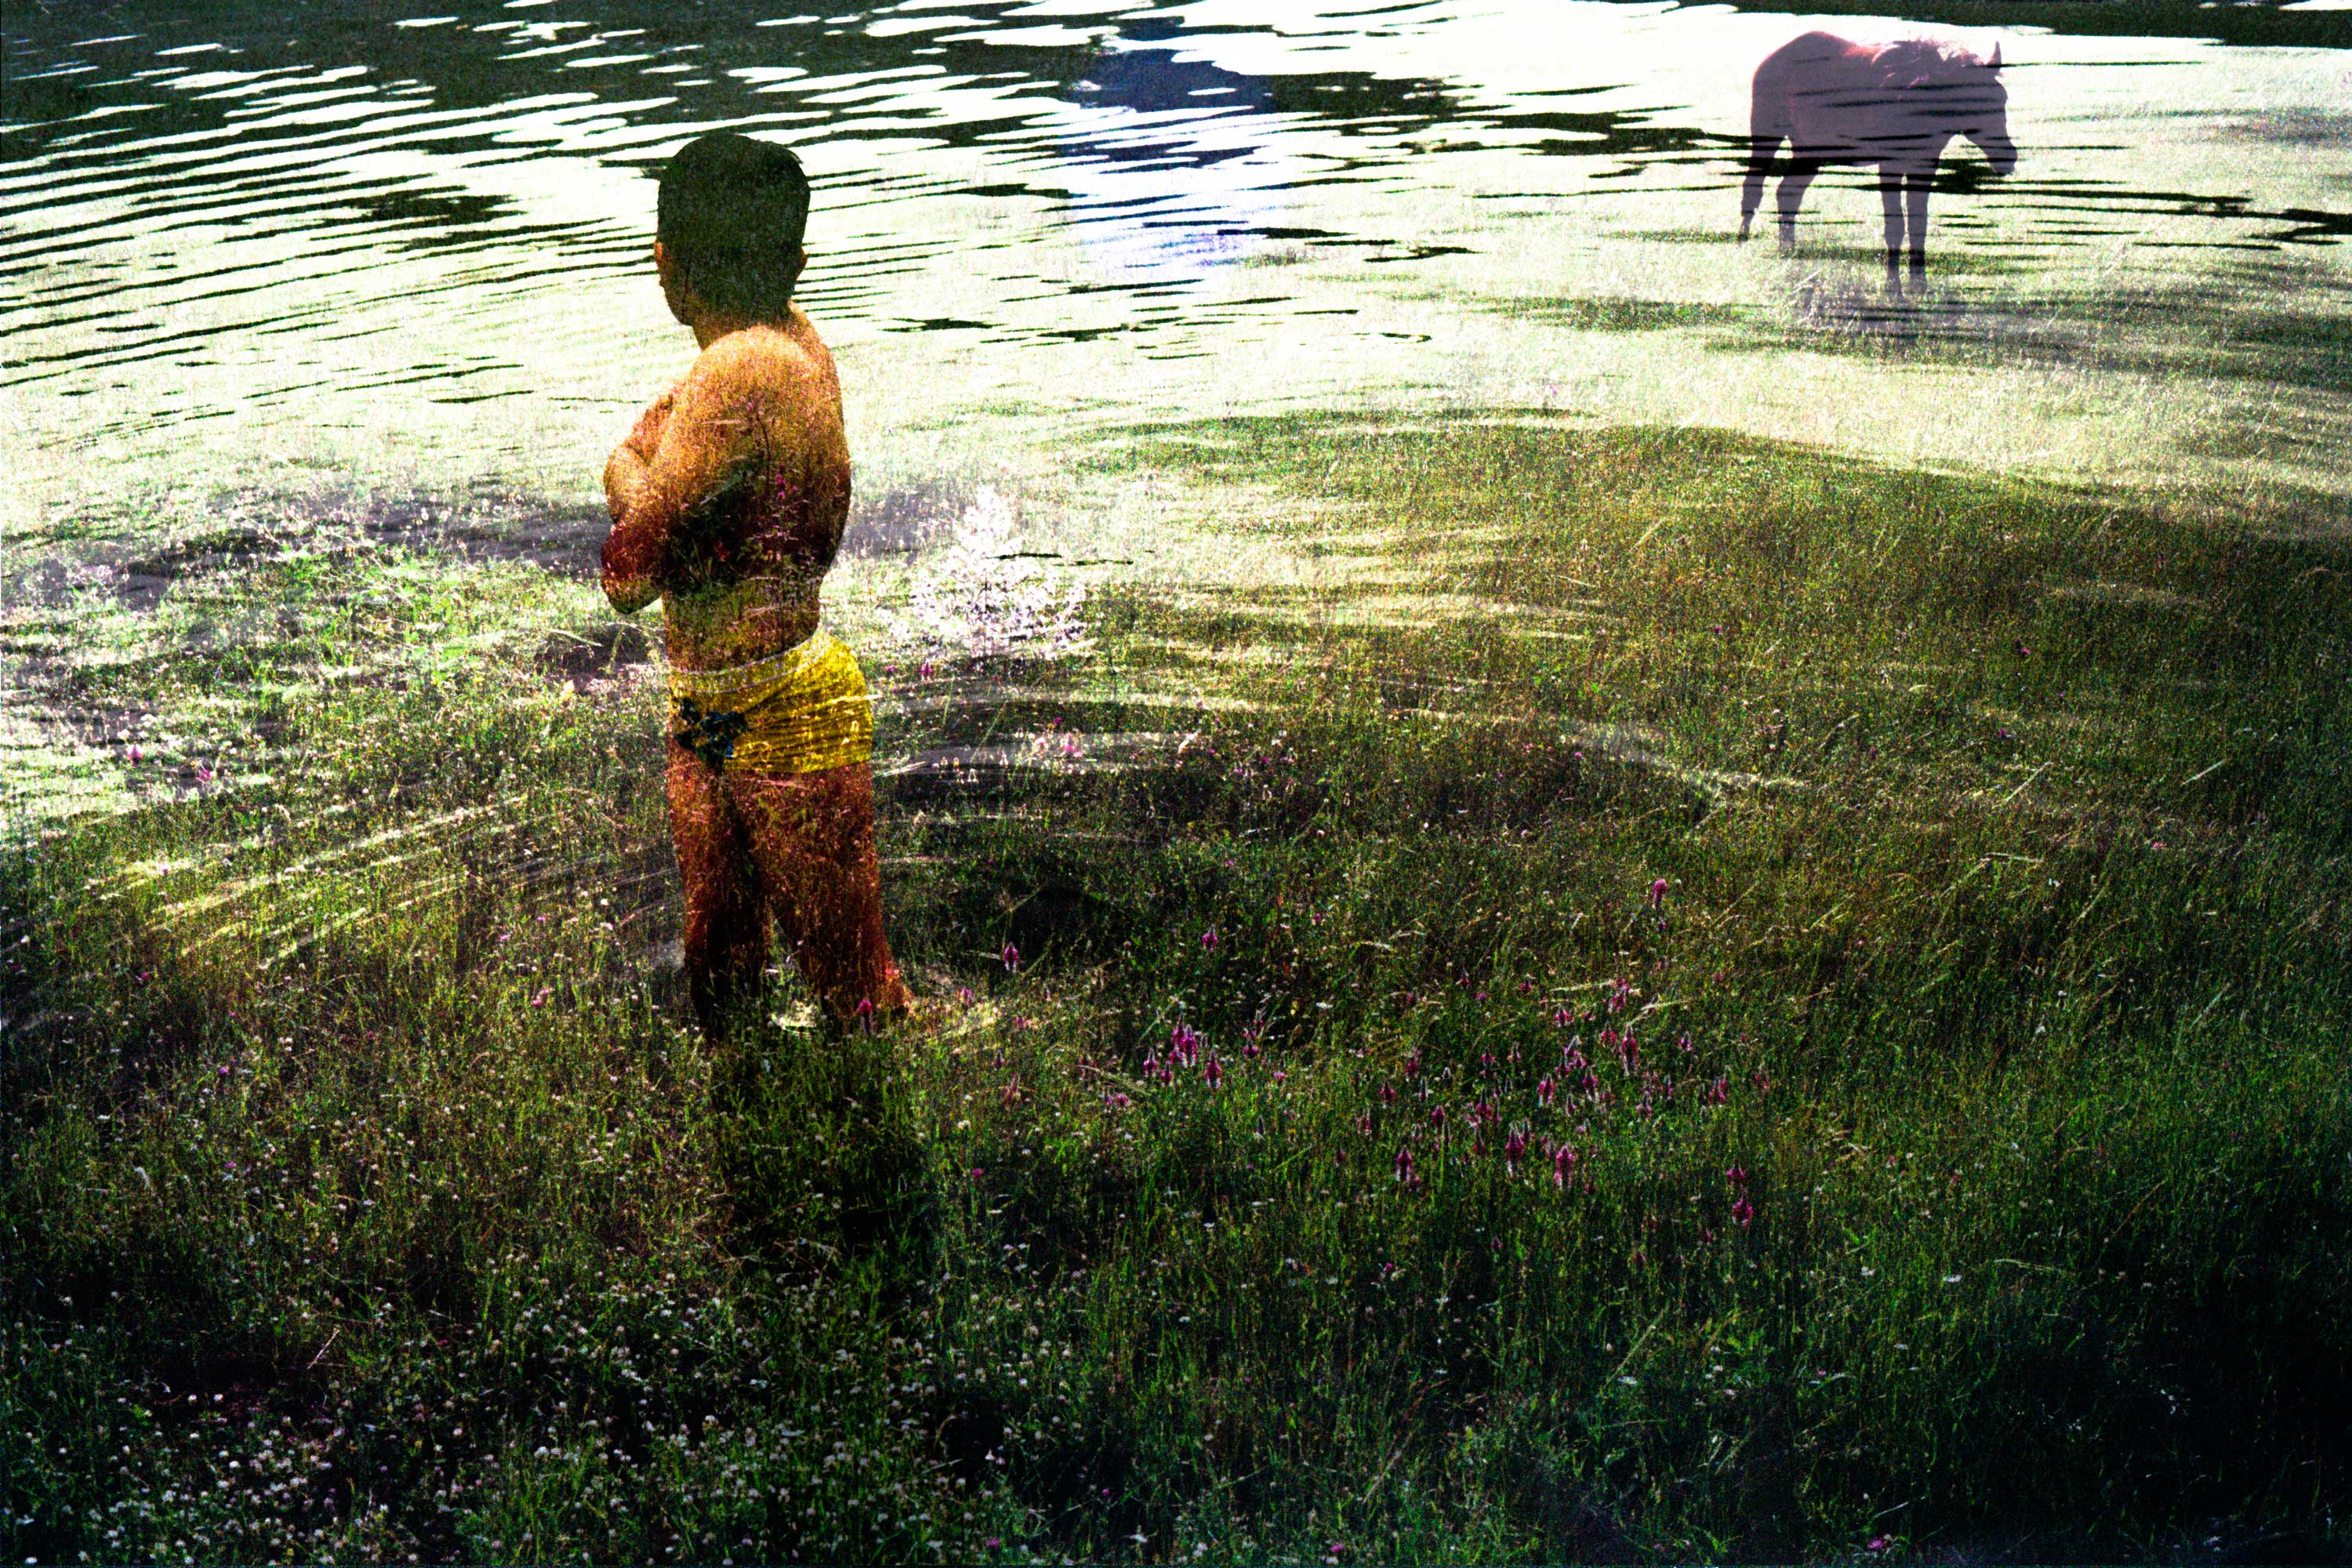 A boy swims in Dukan Lake, Iraqi Kurdistan, May 7, 2016. The horse was photographed near the village of Piramagrun, Iraqi Kurdistan. Many Kurds remedy the late spring heat by swimming in the cool waters of Dukan Lake.